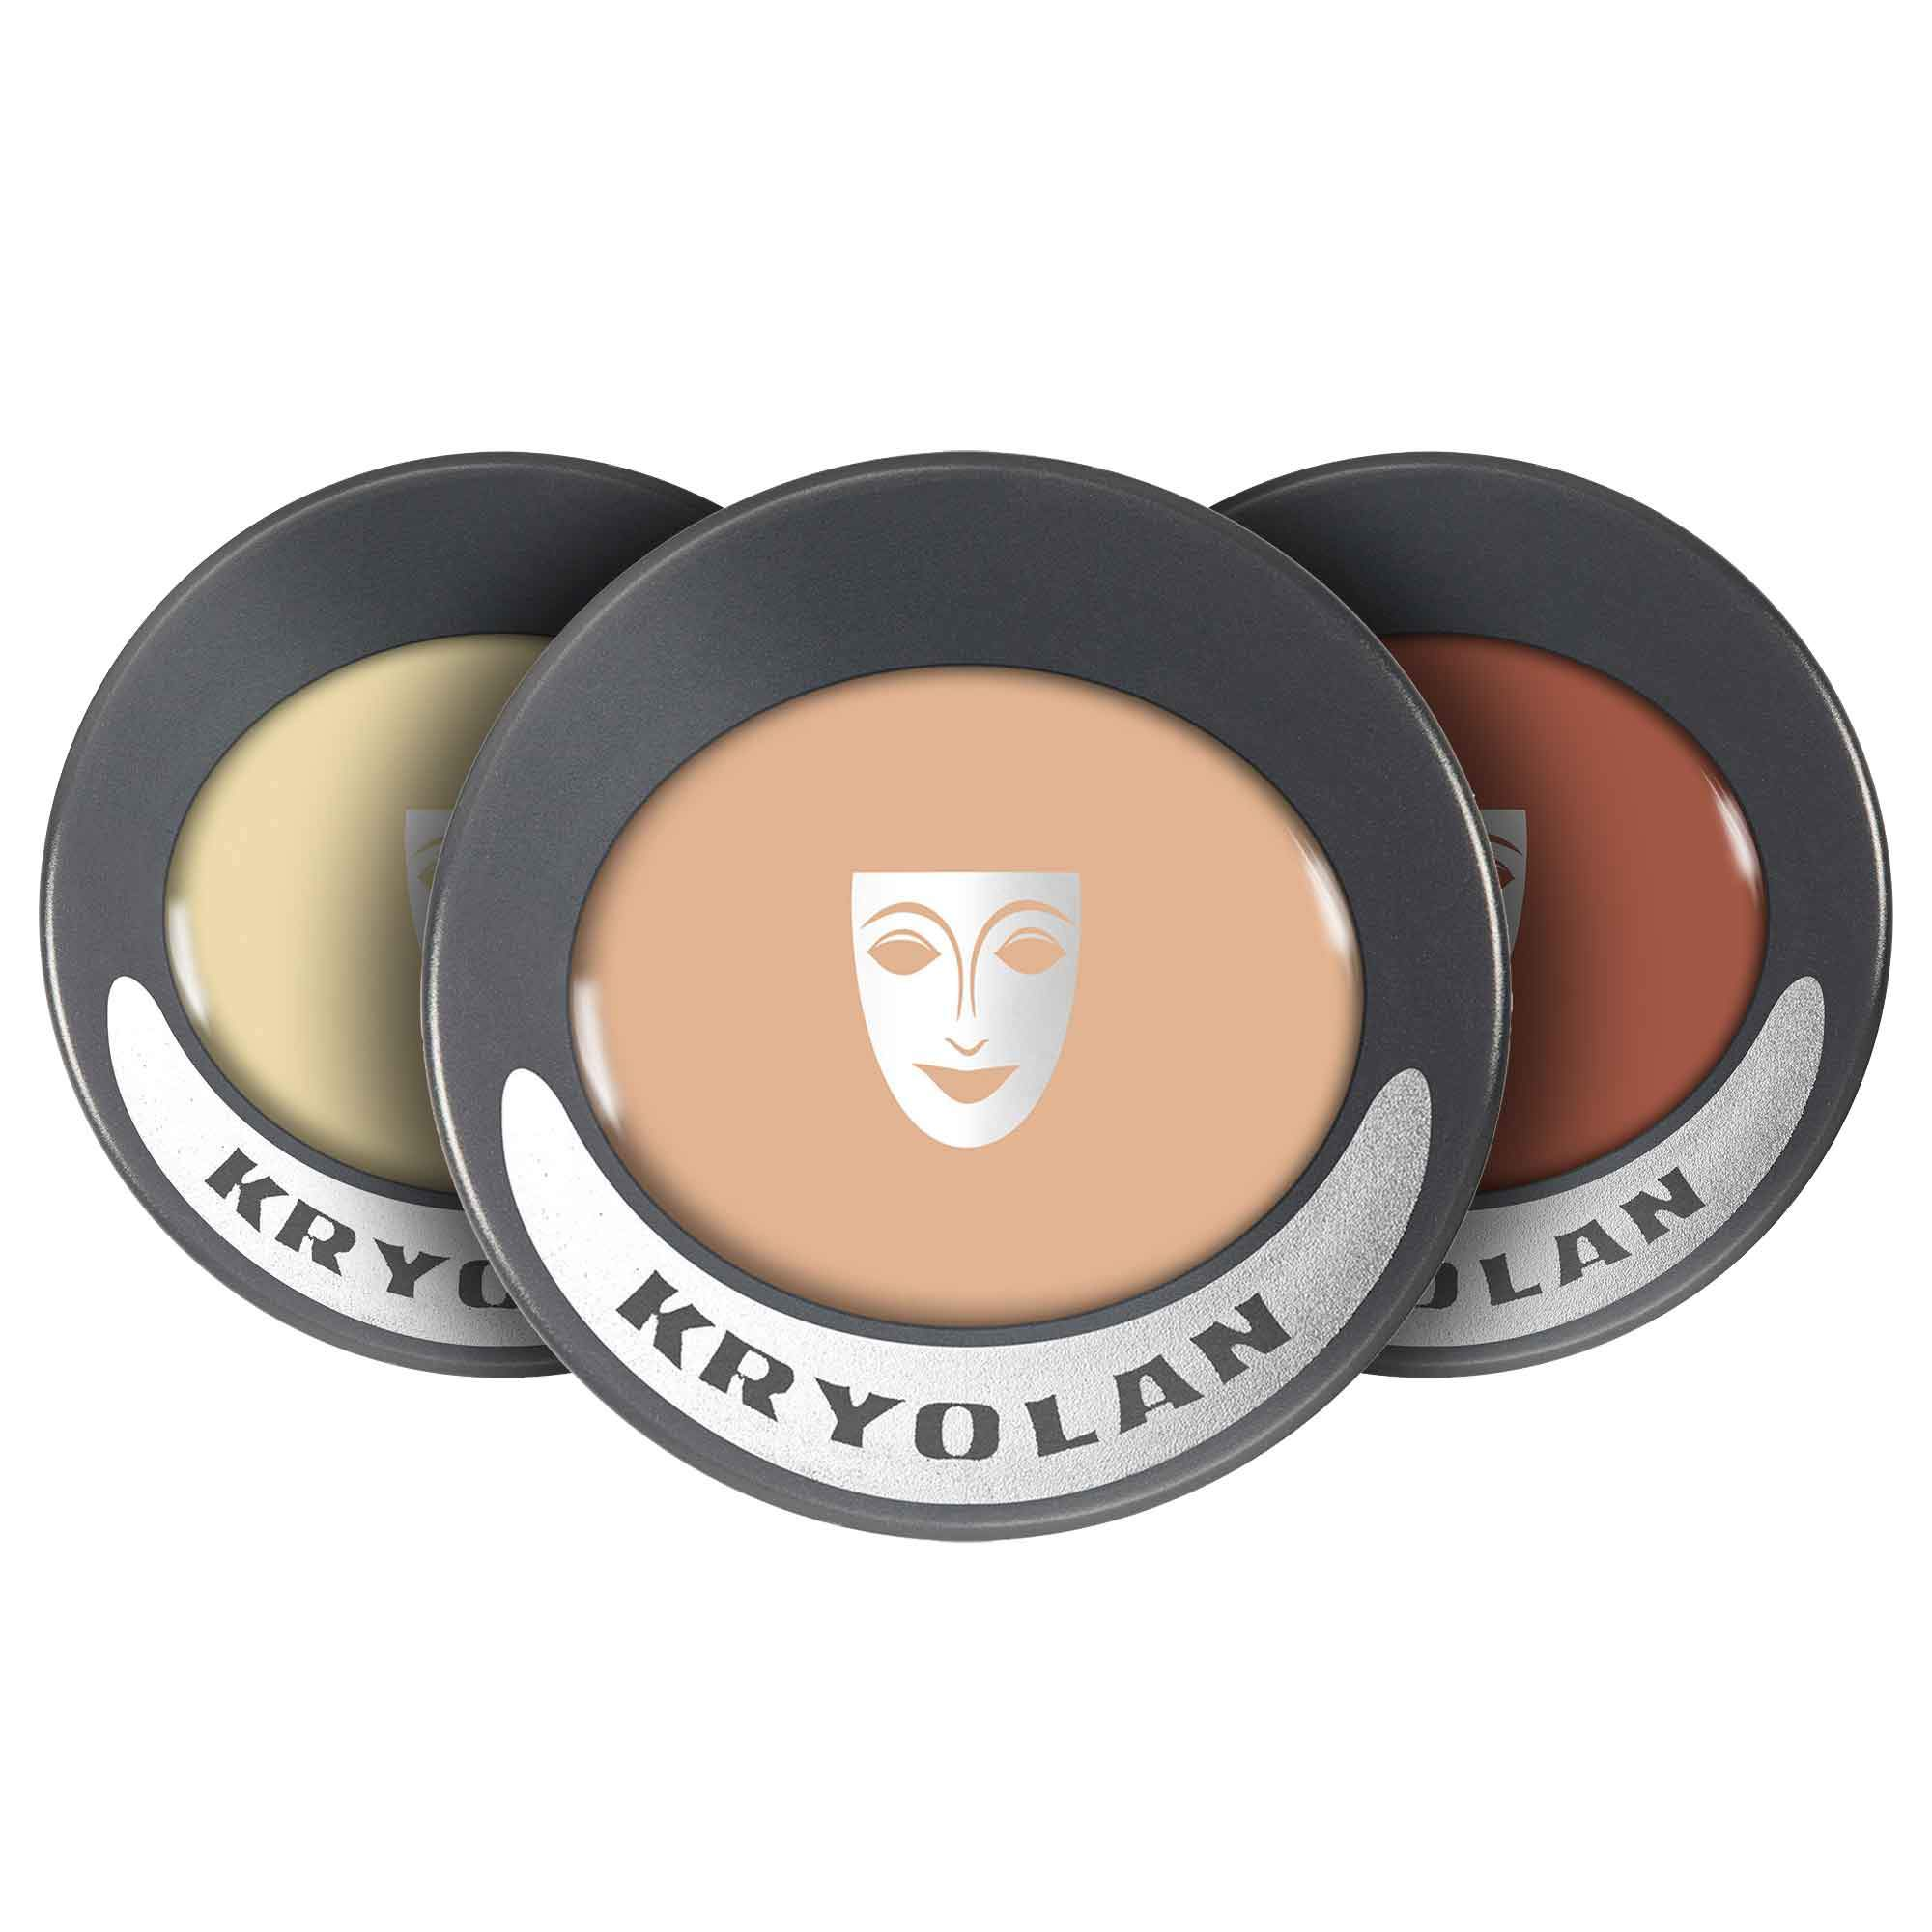 Kryolan Ultra Foundation - Red Carpet FX - Professional Makeup